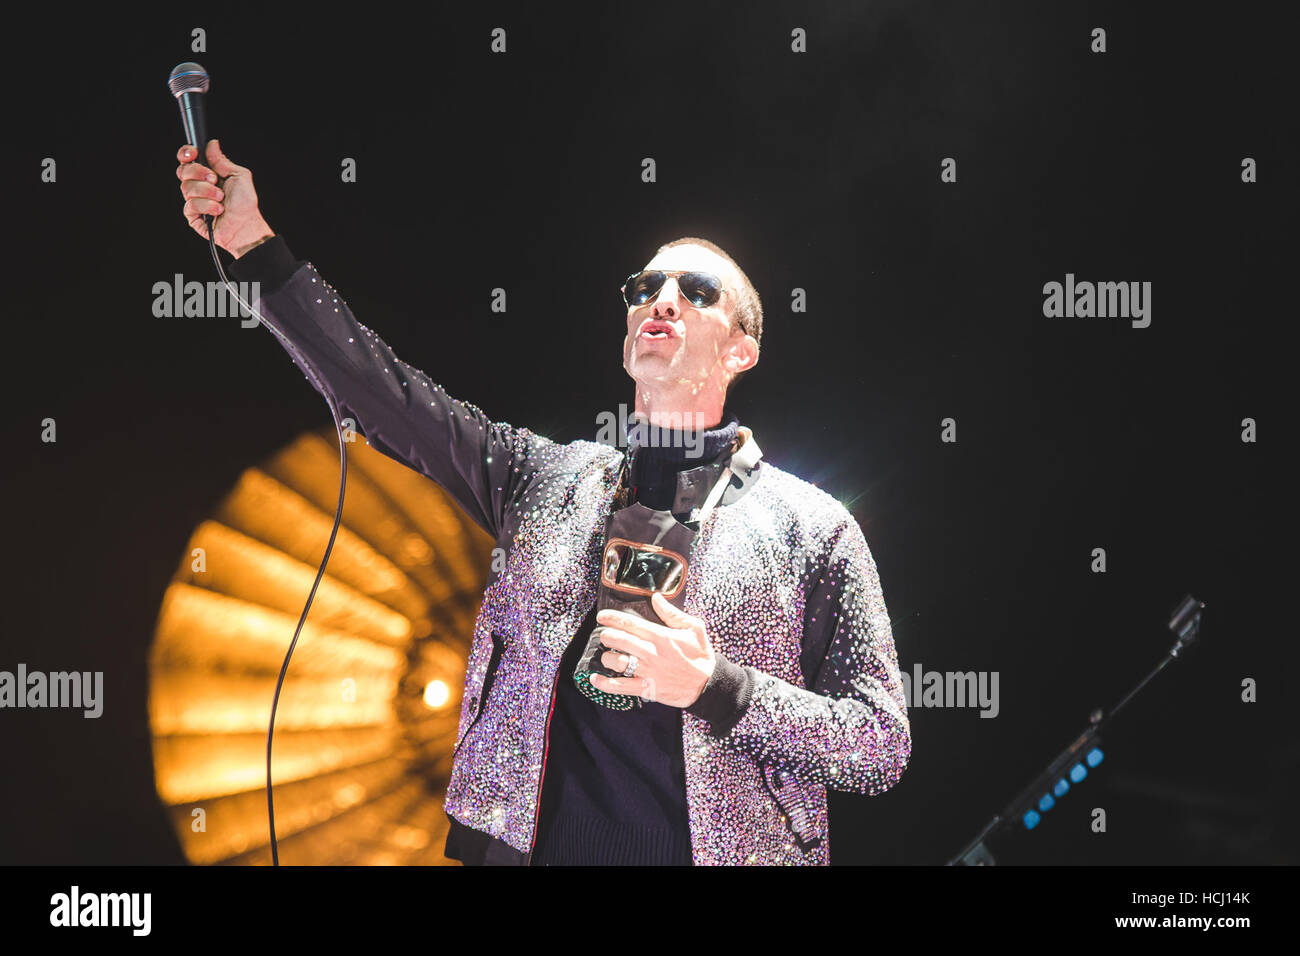 London, UK. 9th December, 2016. December 9, 2016 - Ex, The Verve, frontman, Richard Ashcroft, performs at the London Stock Photo